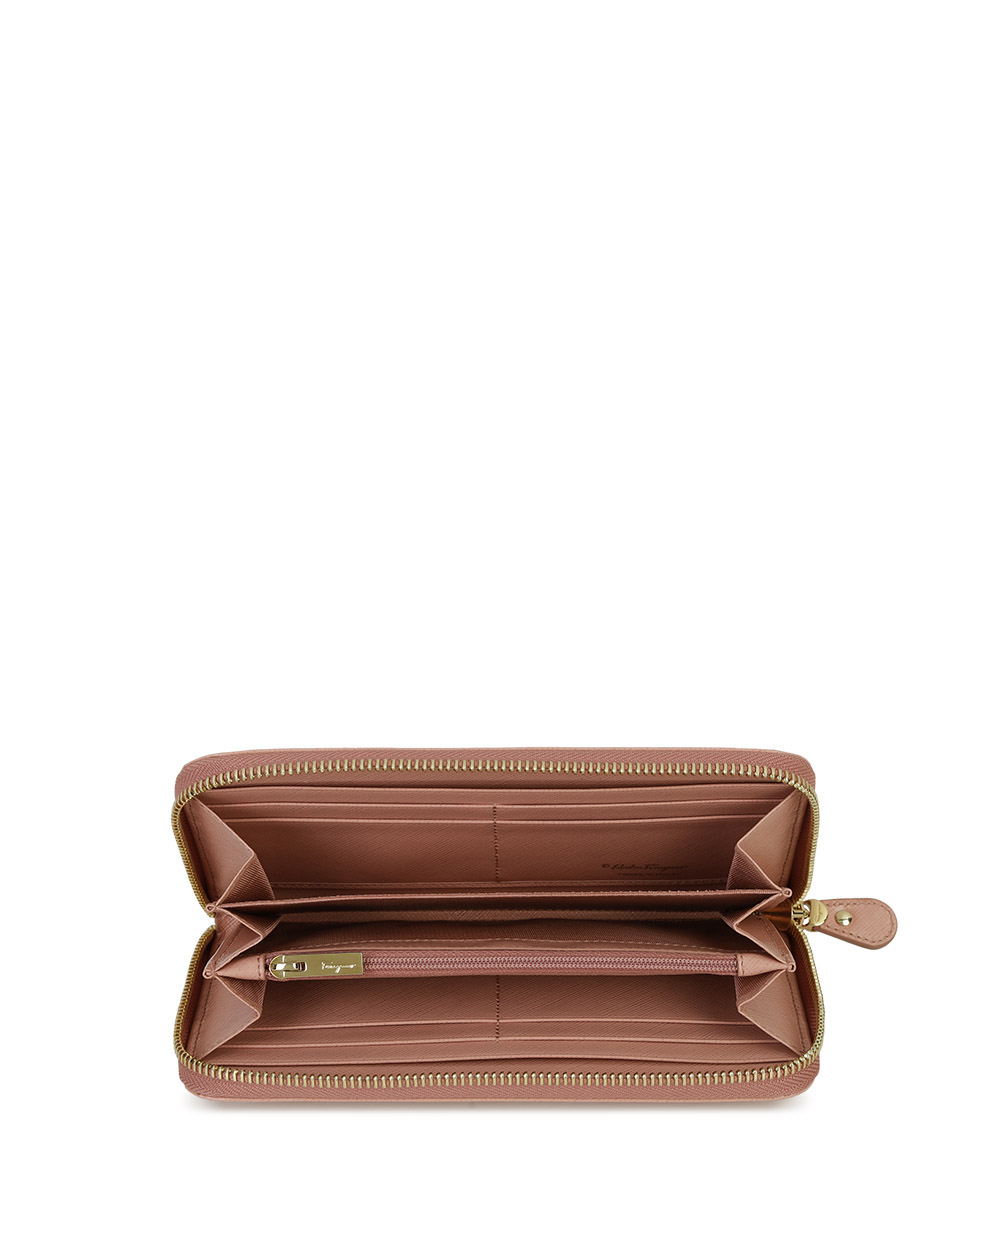 GANCINI Long Wallet 1